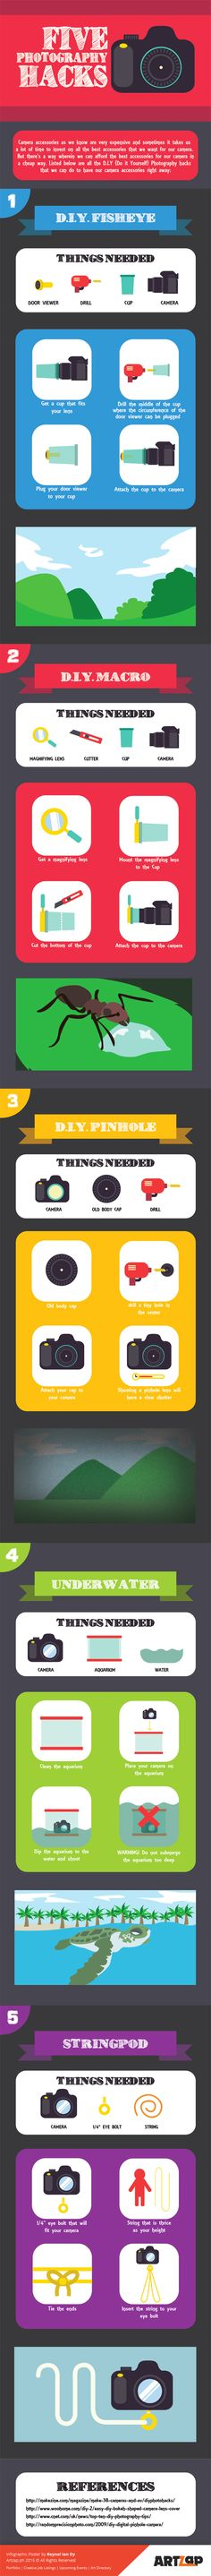 5 DIY Photography Hacks Infographic. Topic: camera, photo gear, photographer.